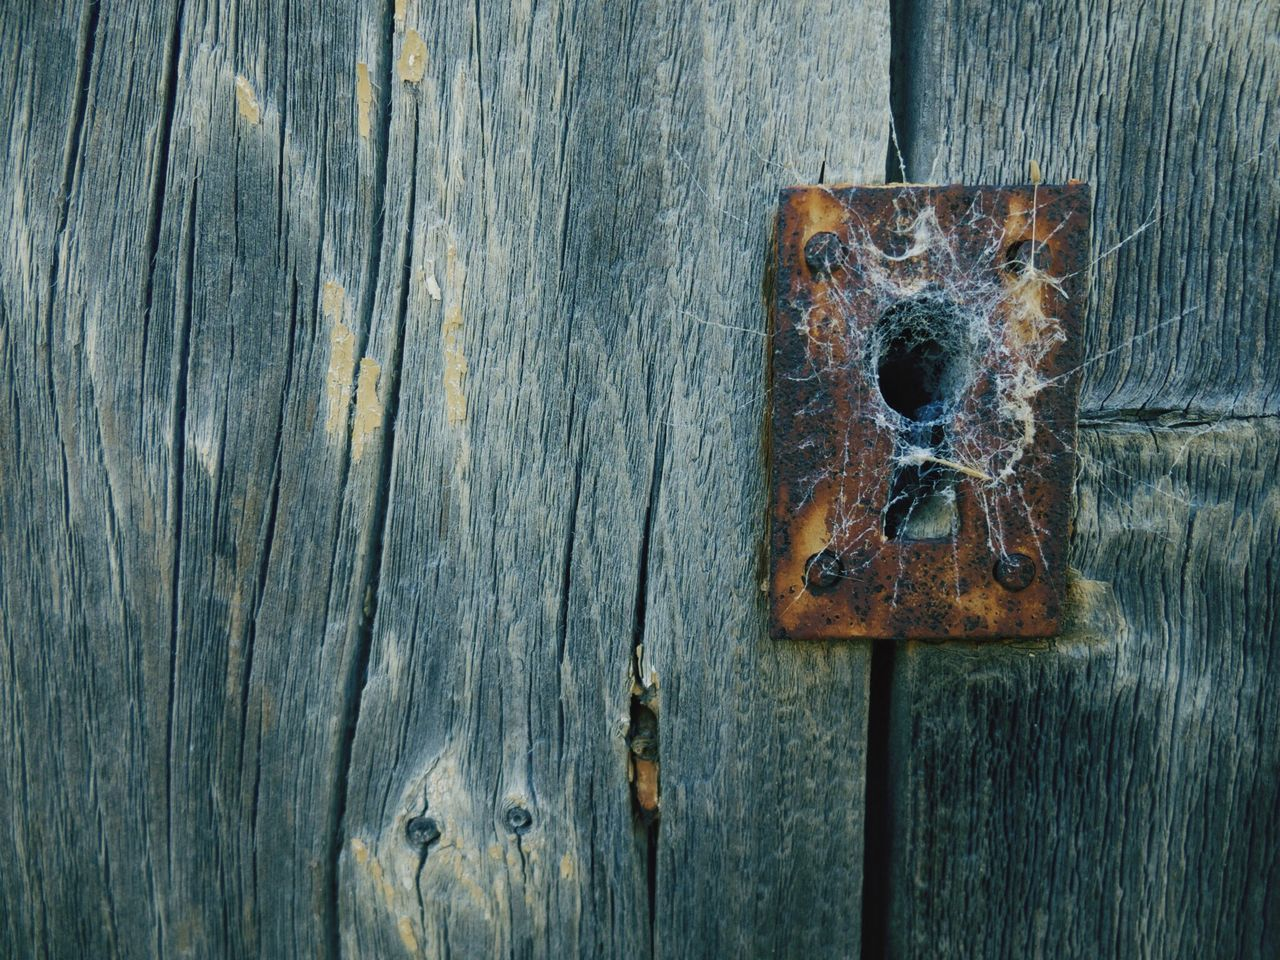 Wood - Material Door Safety Textured  Security Close-up Protection Outdoors Rusty Weathered No People Day Latch